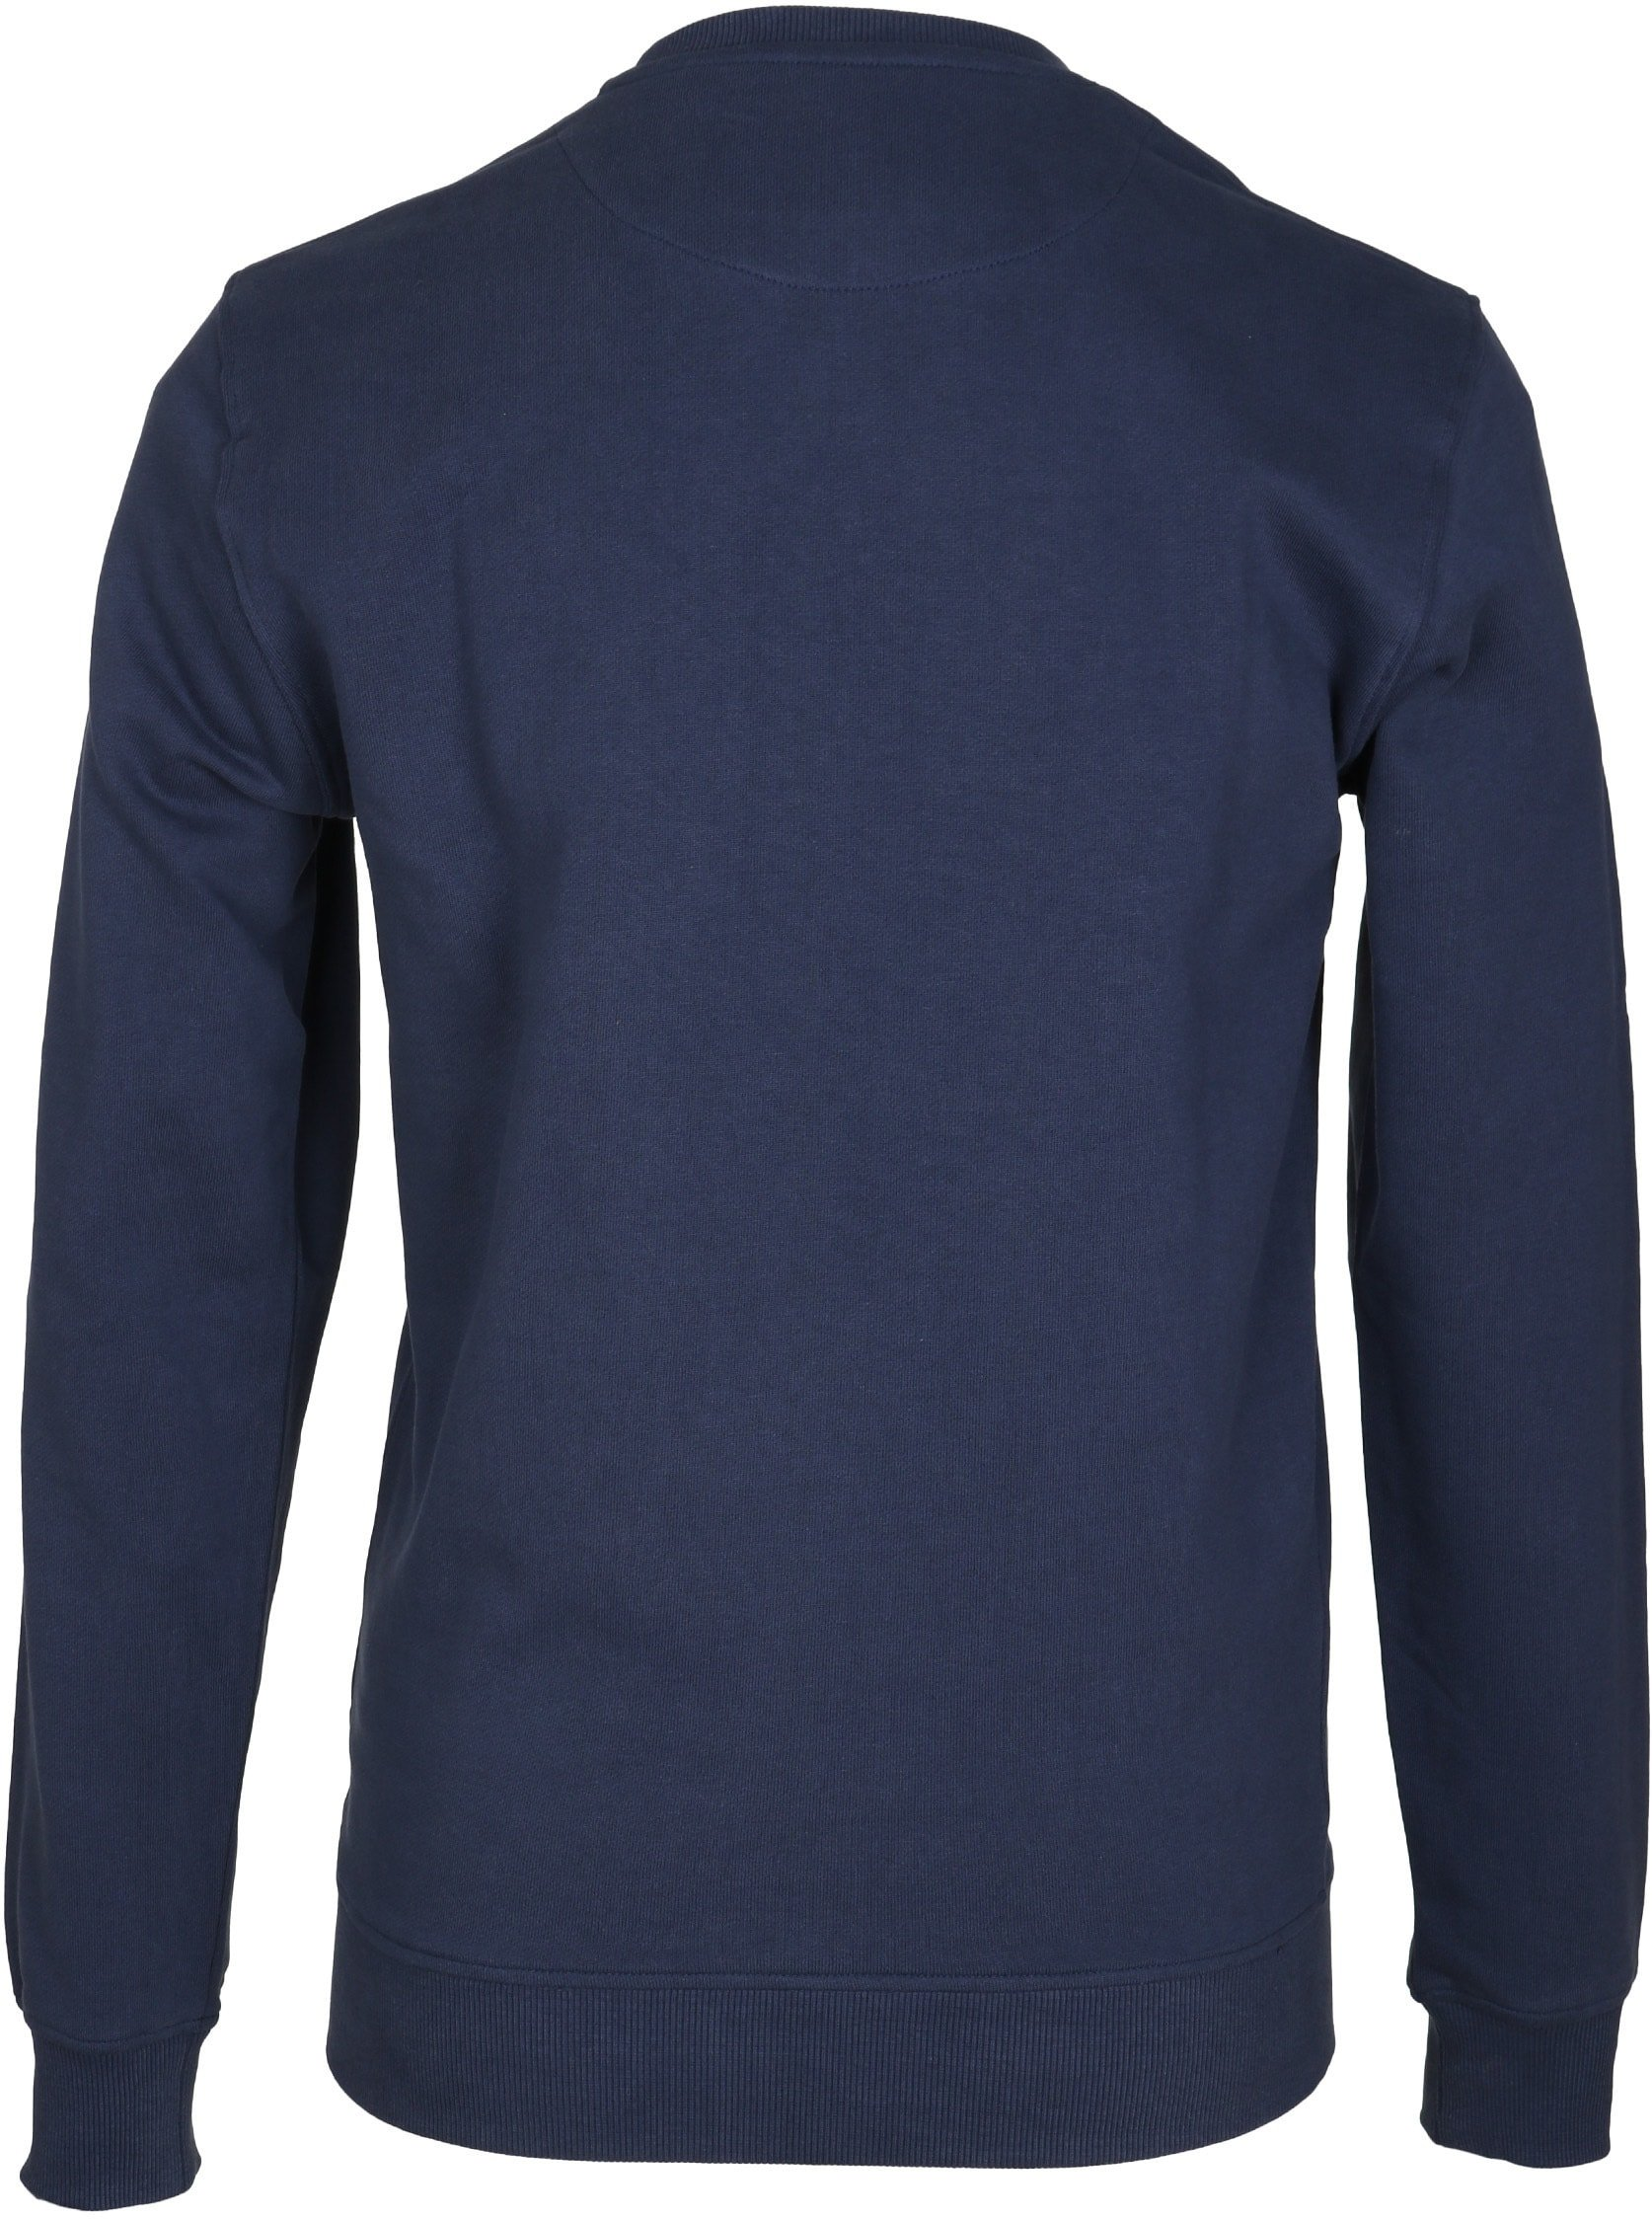 Suitable Sweater Uni Navy photo 2